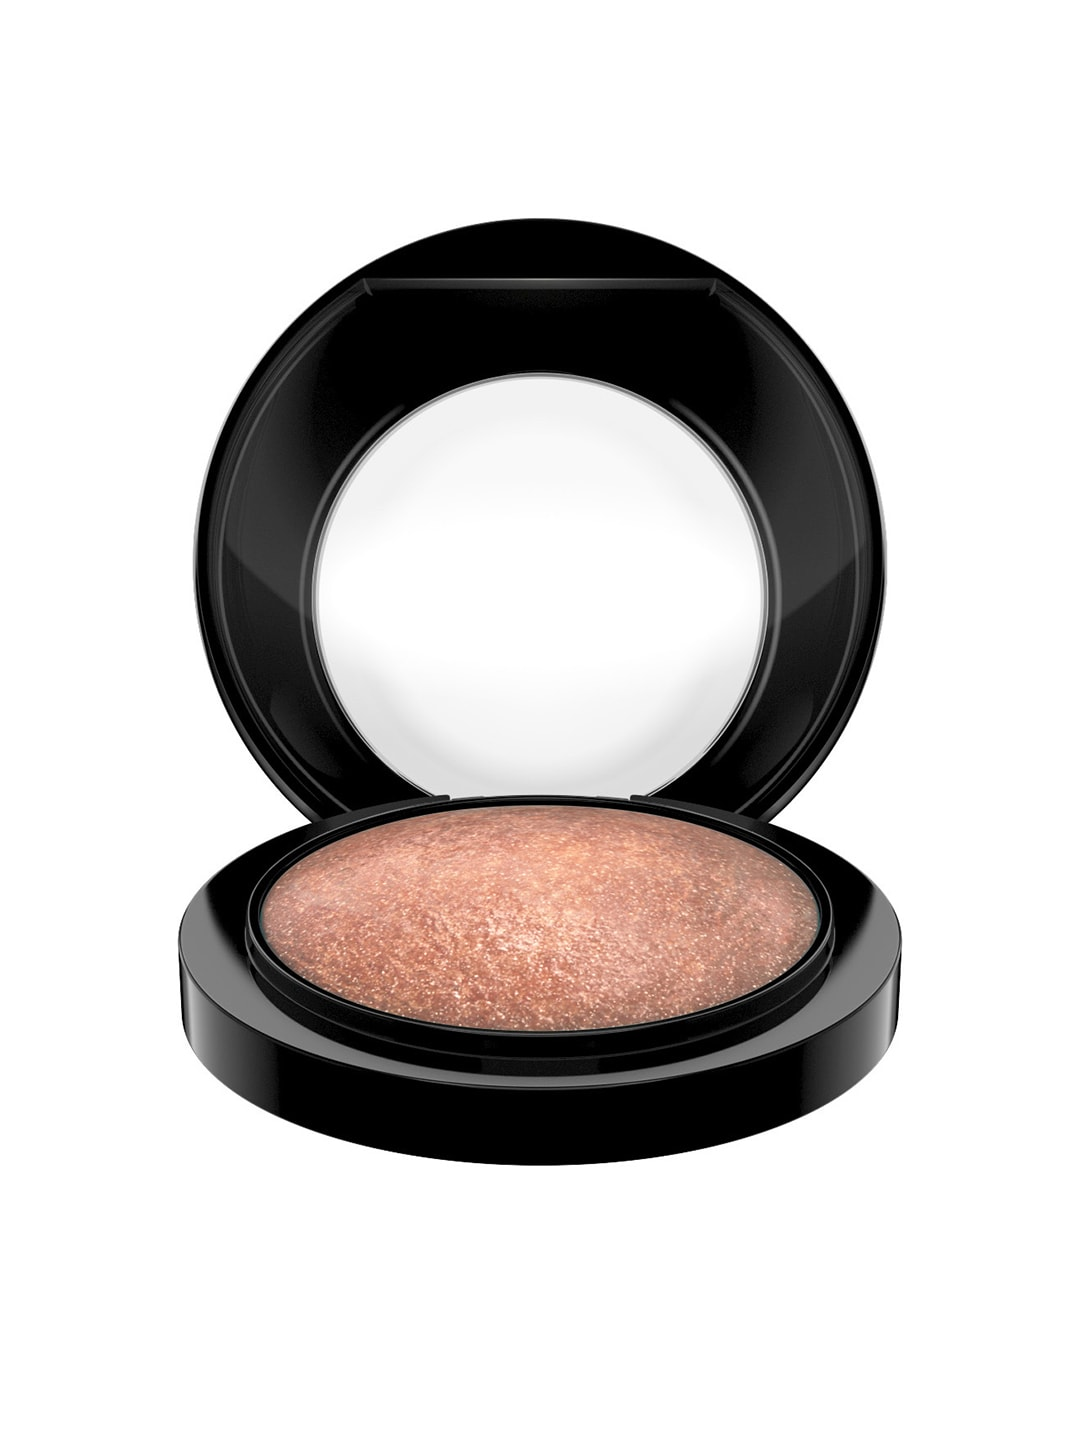 M.A.C Cheeky Bronze Mineralize Skinfinish Compact image